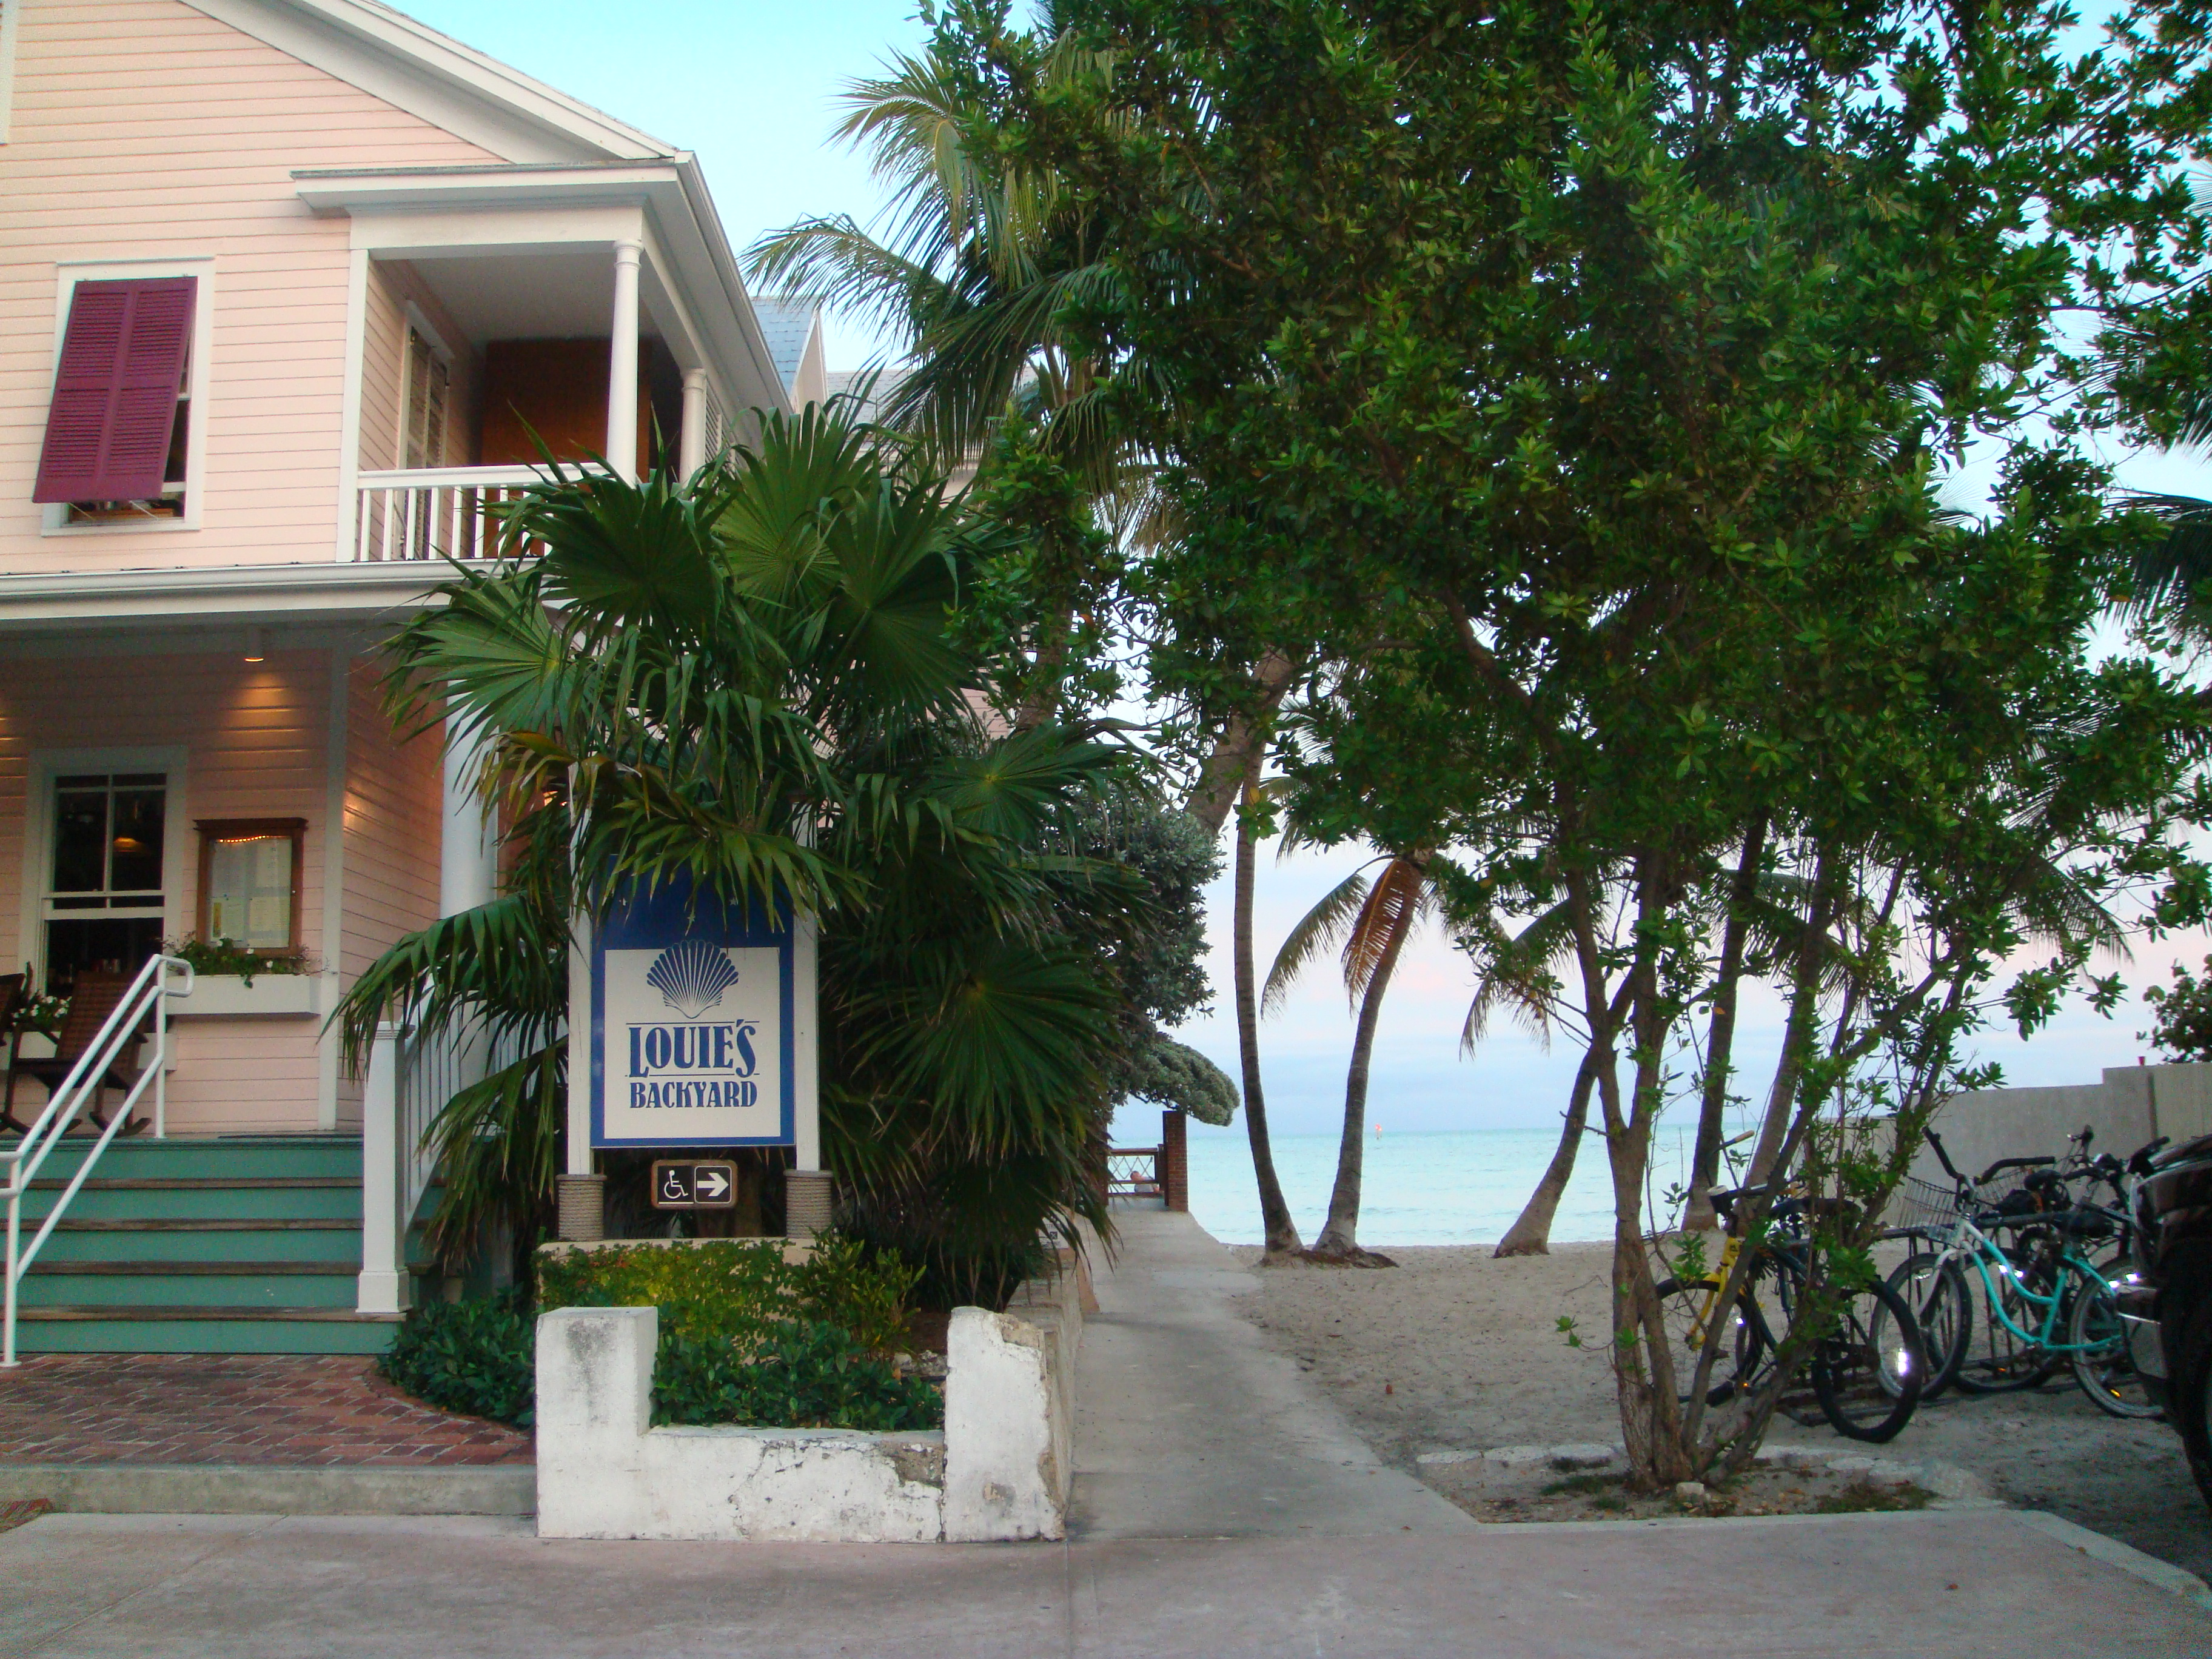 Paradise Is Key Wests Blog  Living  Breathing  Loving Key West  Page 2